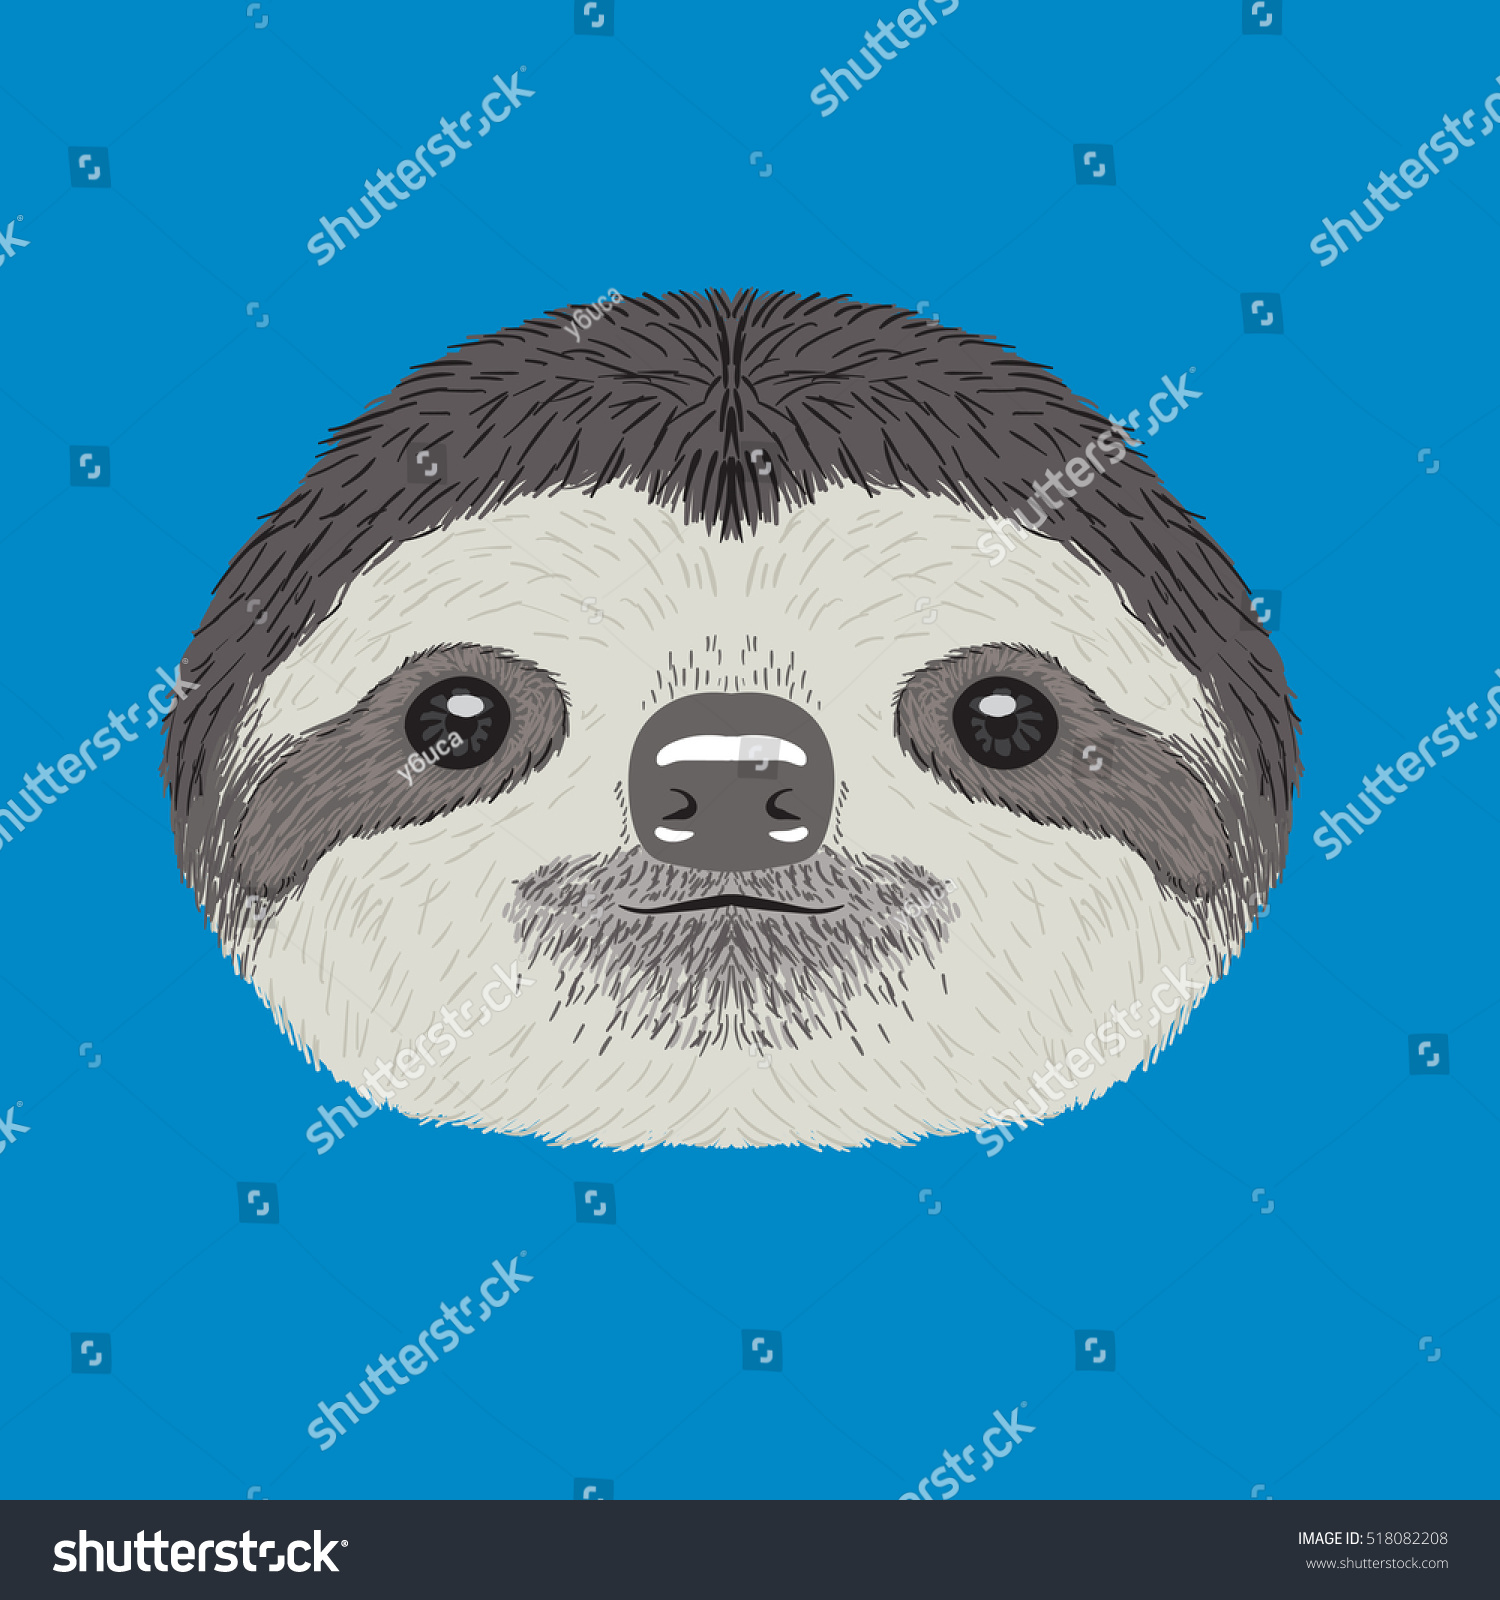 Sloth Vector Illustration - 518082208 : Shutterstock